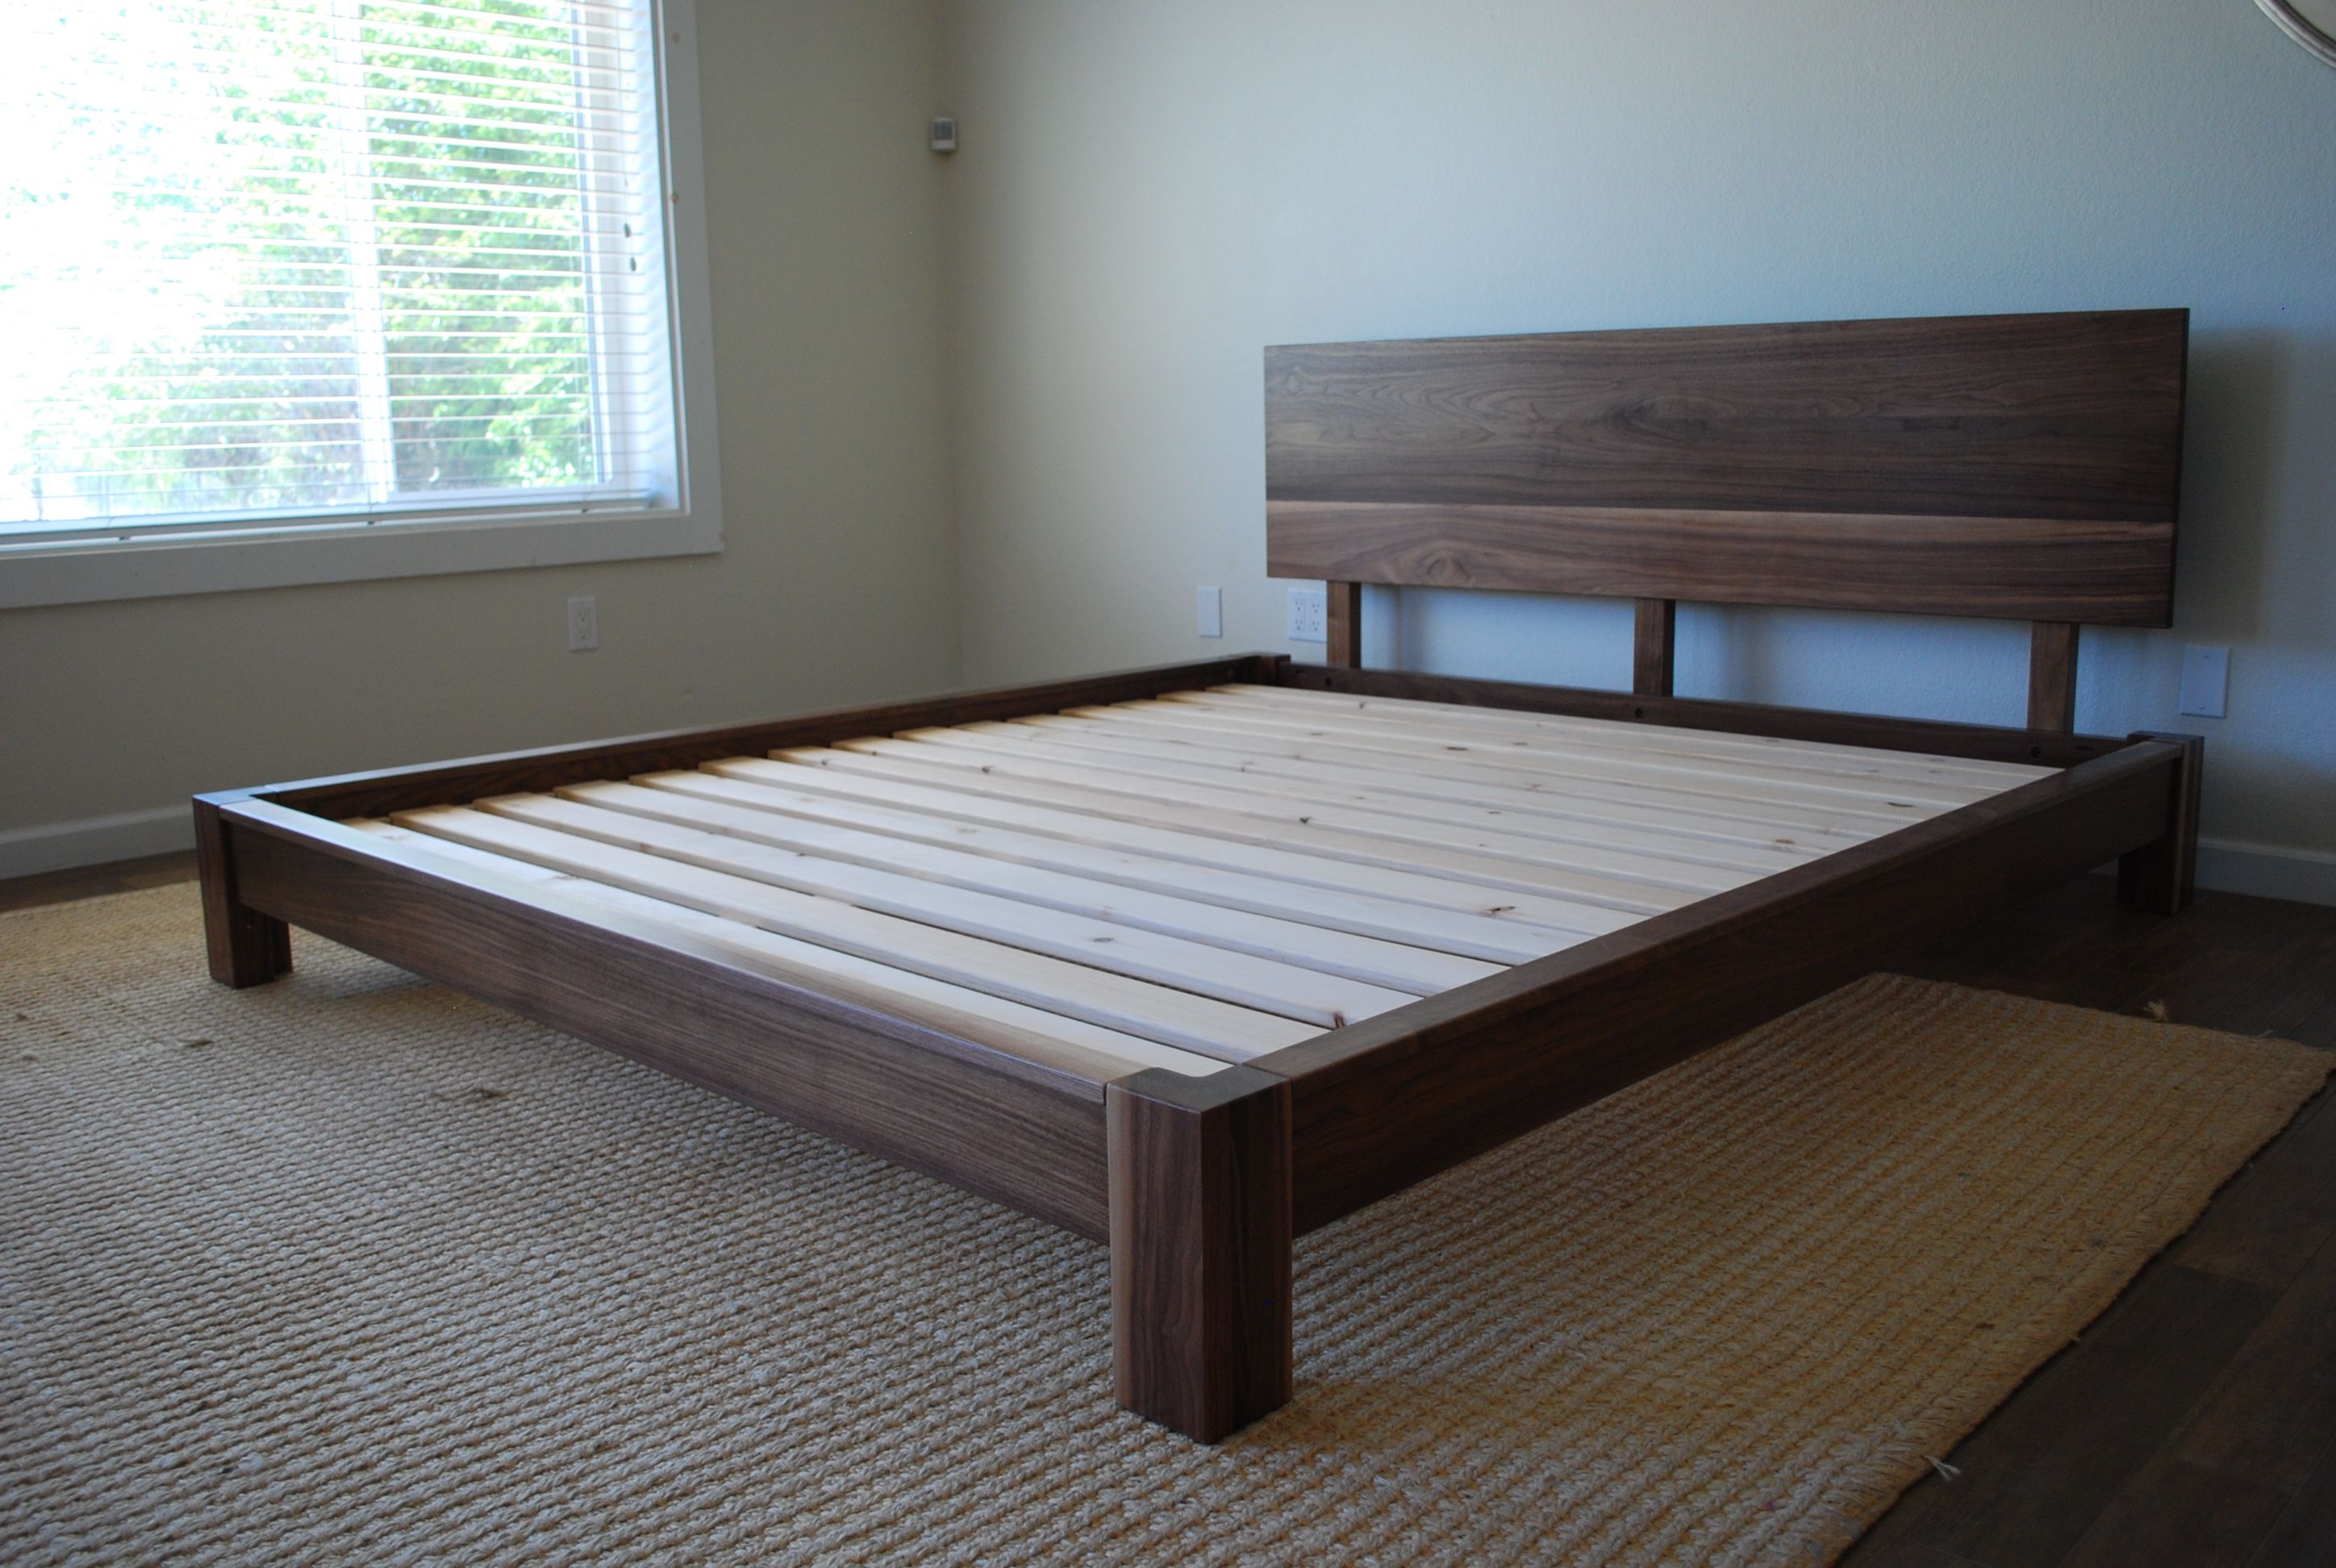 The Low Profile Platform Bed With Headboard In Solid Black Walnut